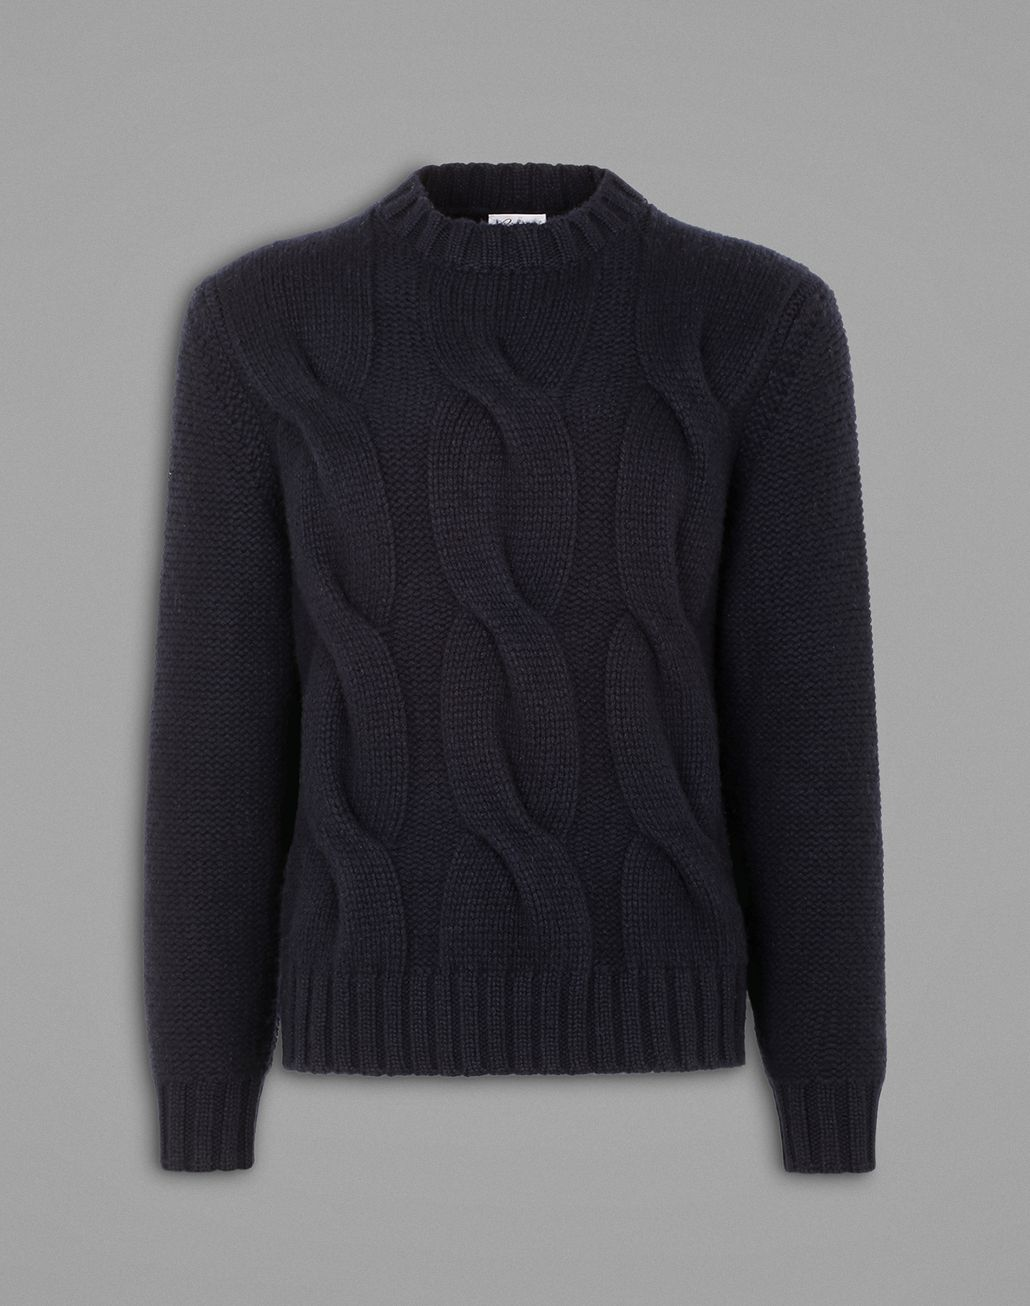 BRIONI Blue Cable Knit Sweater Knitwear Man f